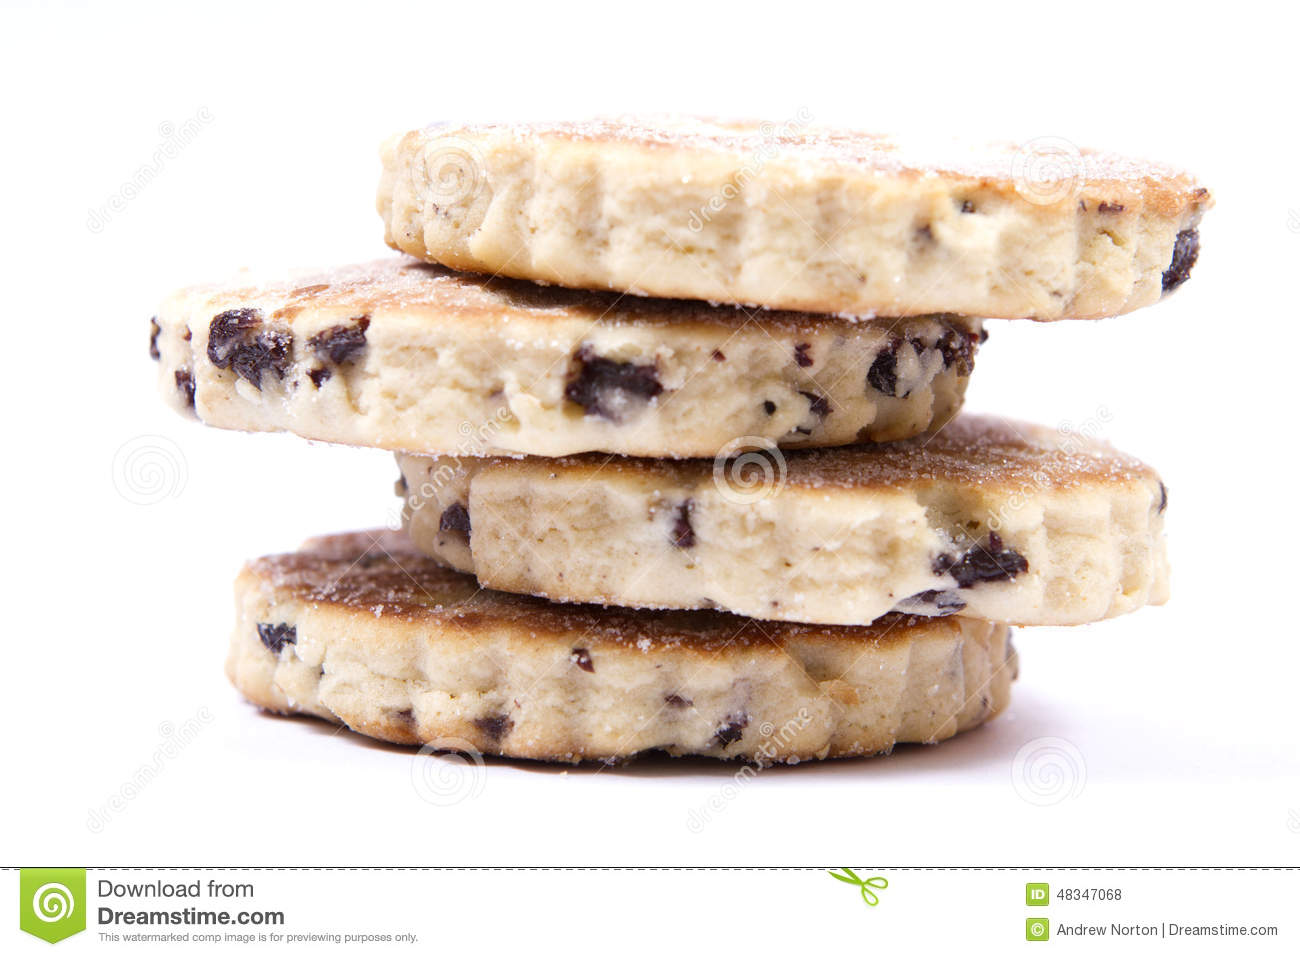 Clipart Welsh Cake : Welsh Cakes Clipart Cake Ideas and Designs